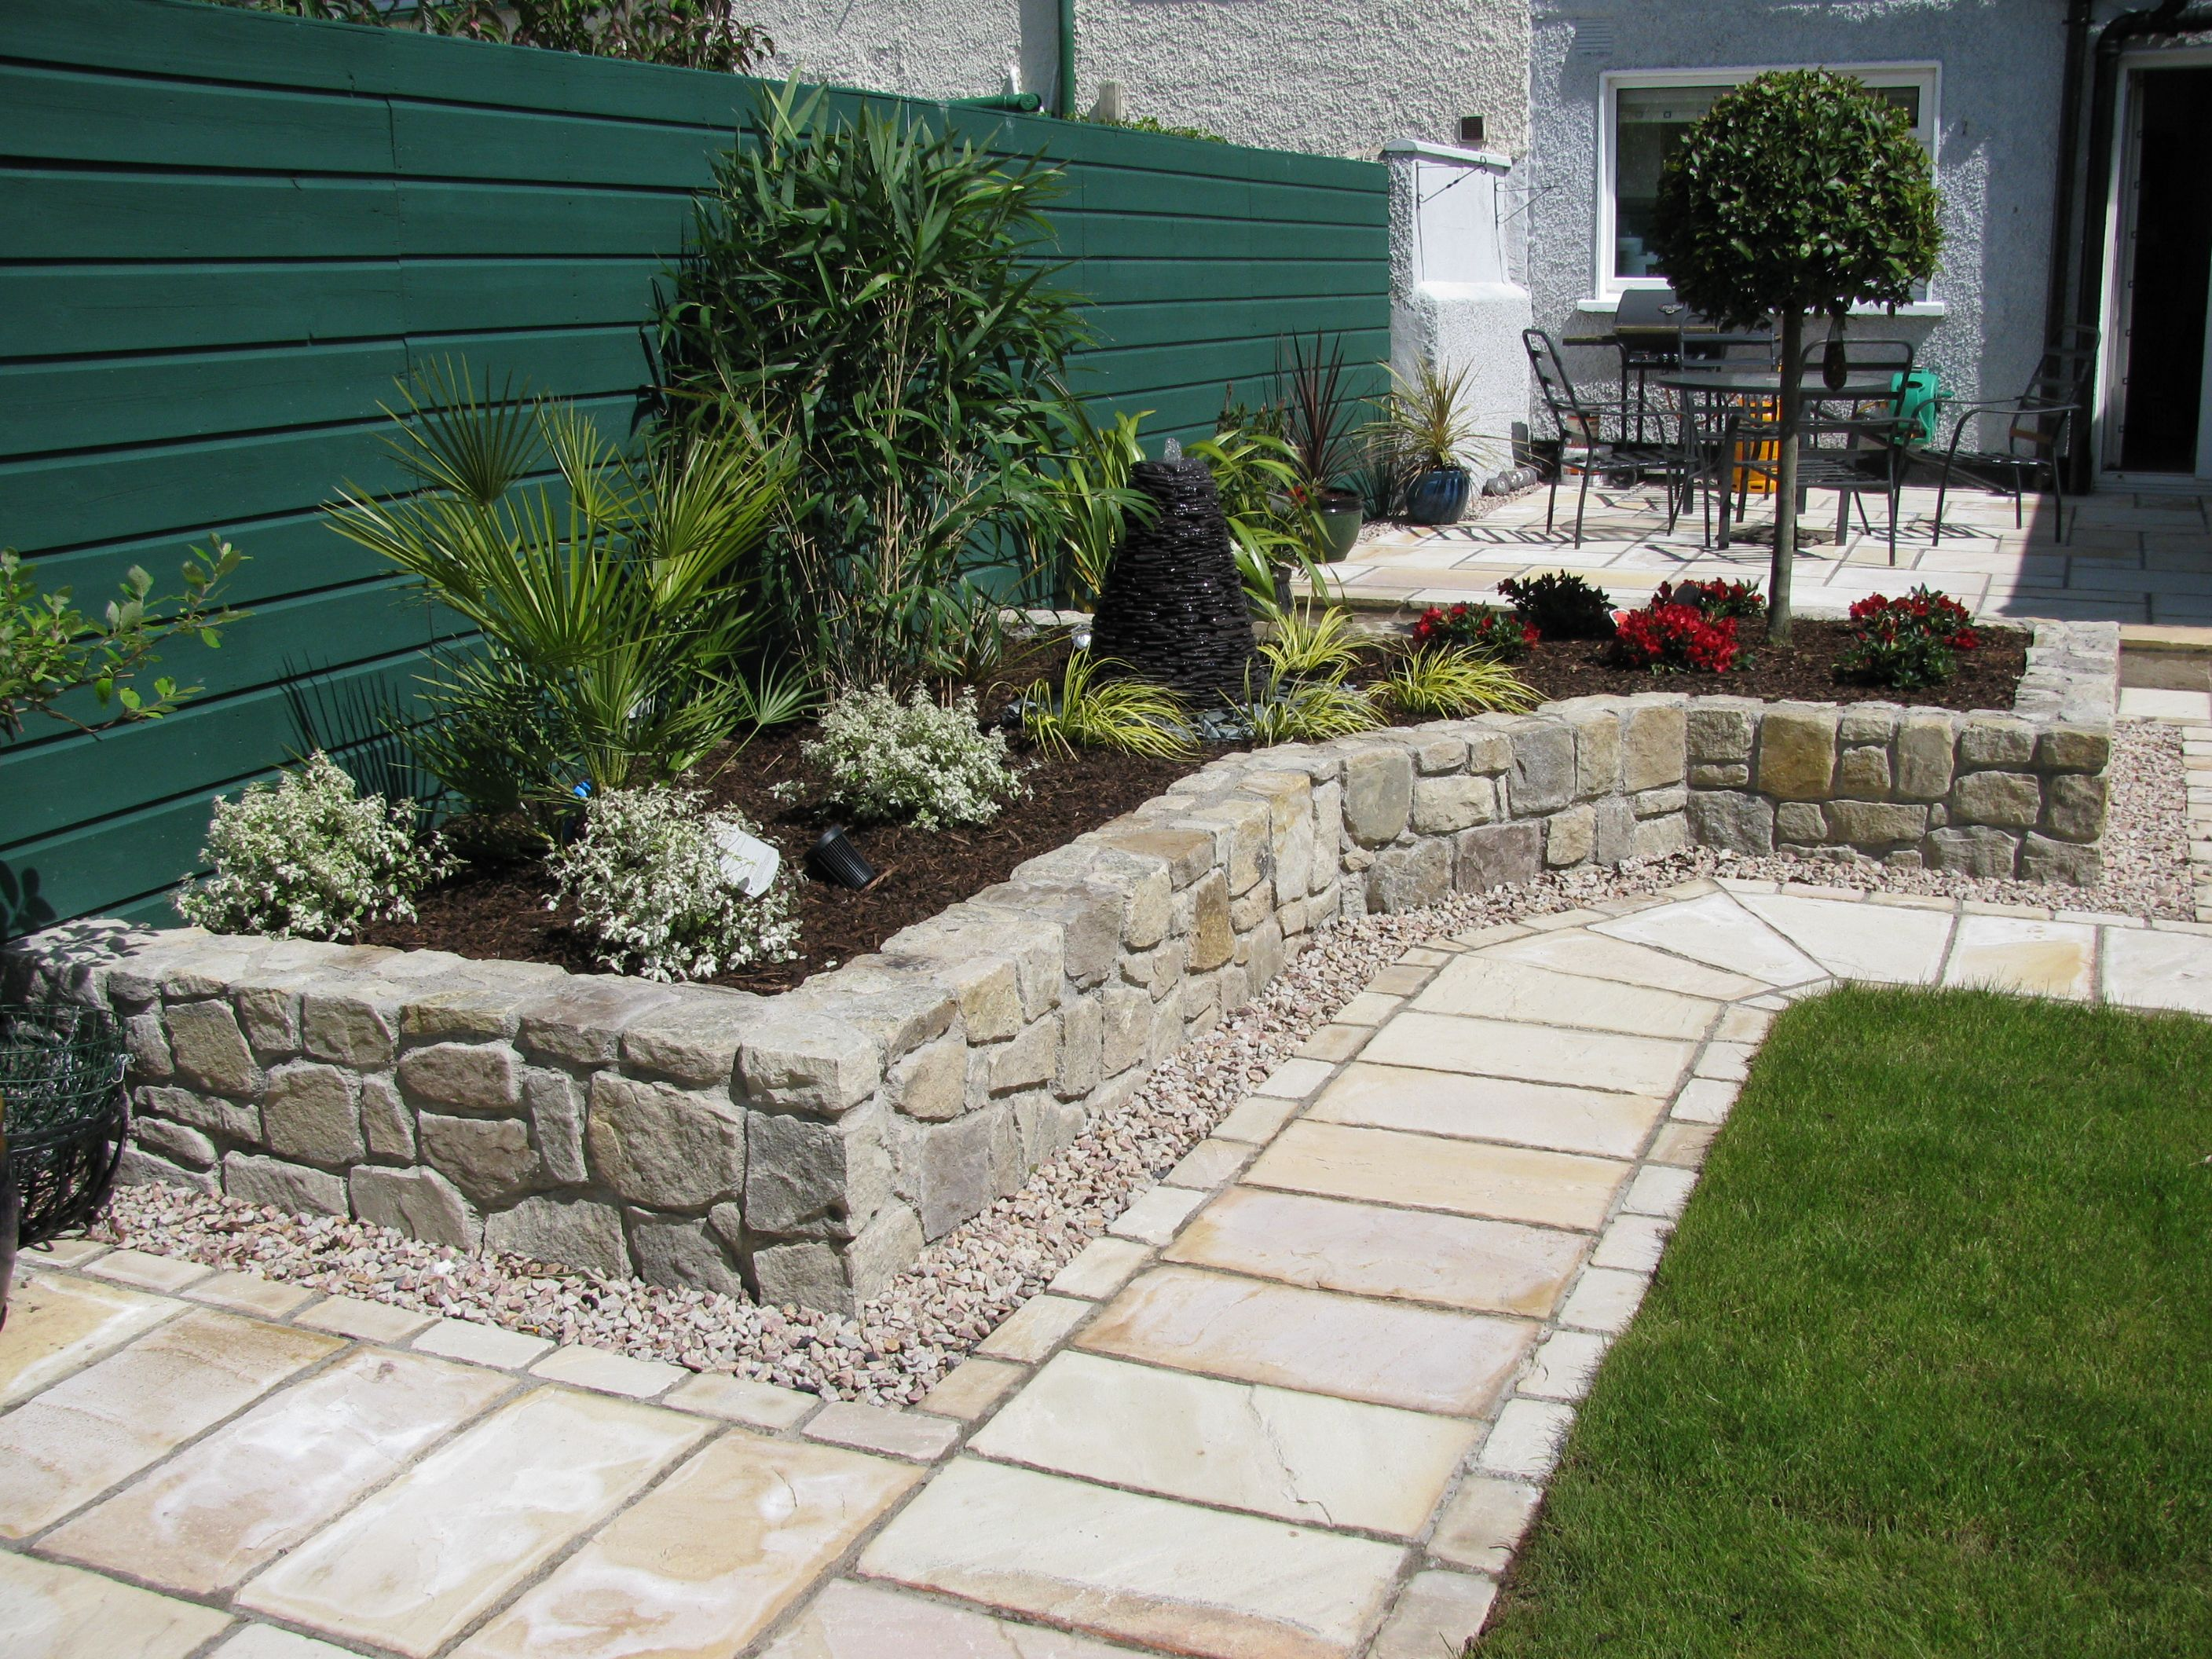 Pictures of landscaping small yards landscaping design for Pictures of stone patios